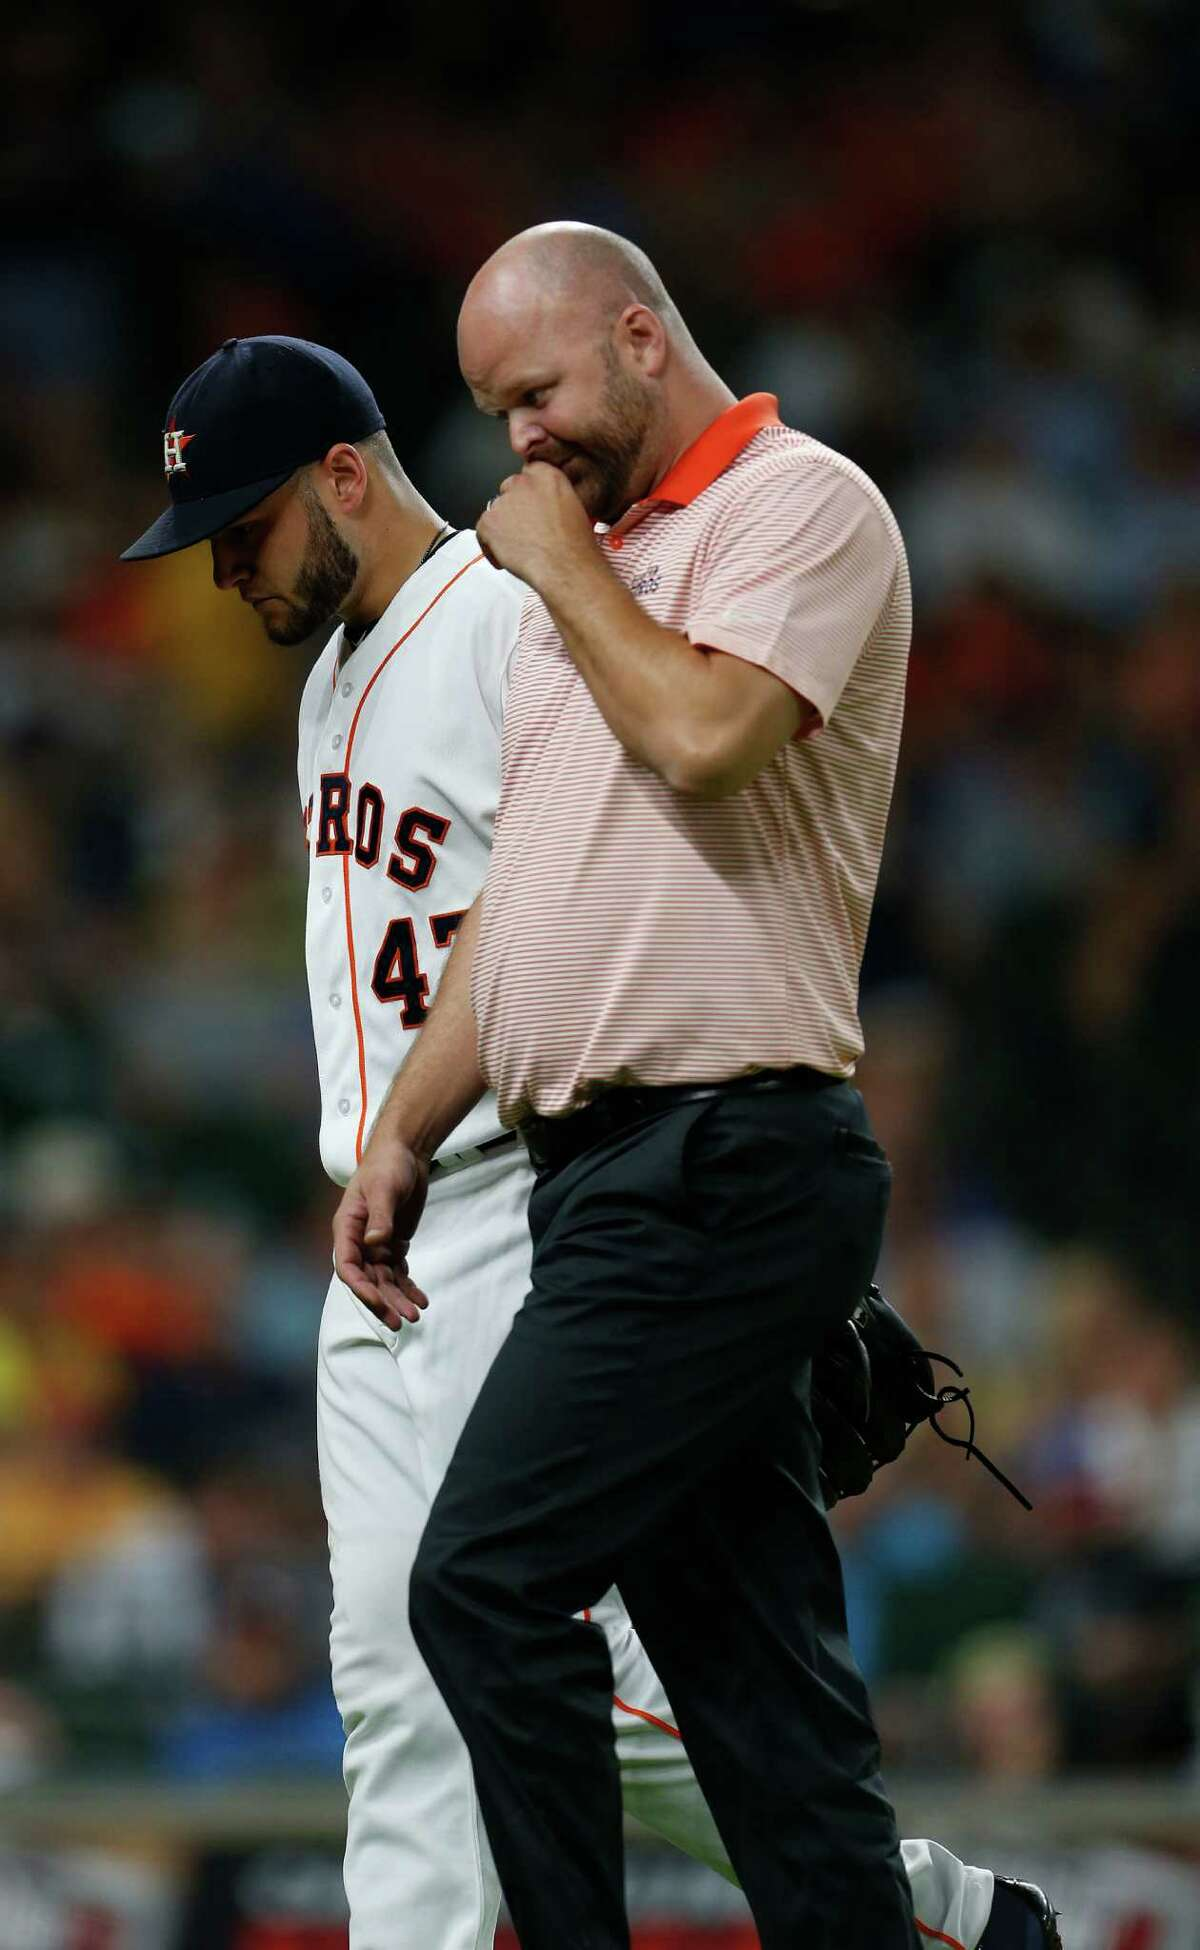 Houston Astros starting pitcher Lance McCullers (43) walks back to the dugout with trainer James Ready during the fifth inning of an MLB game at Minute Maid Park, Tuesday, Aug. 2, 2016, in Houston.